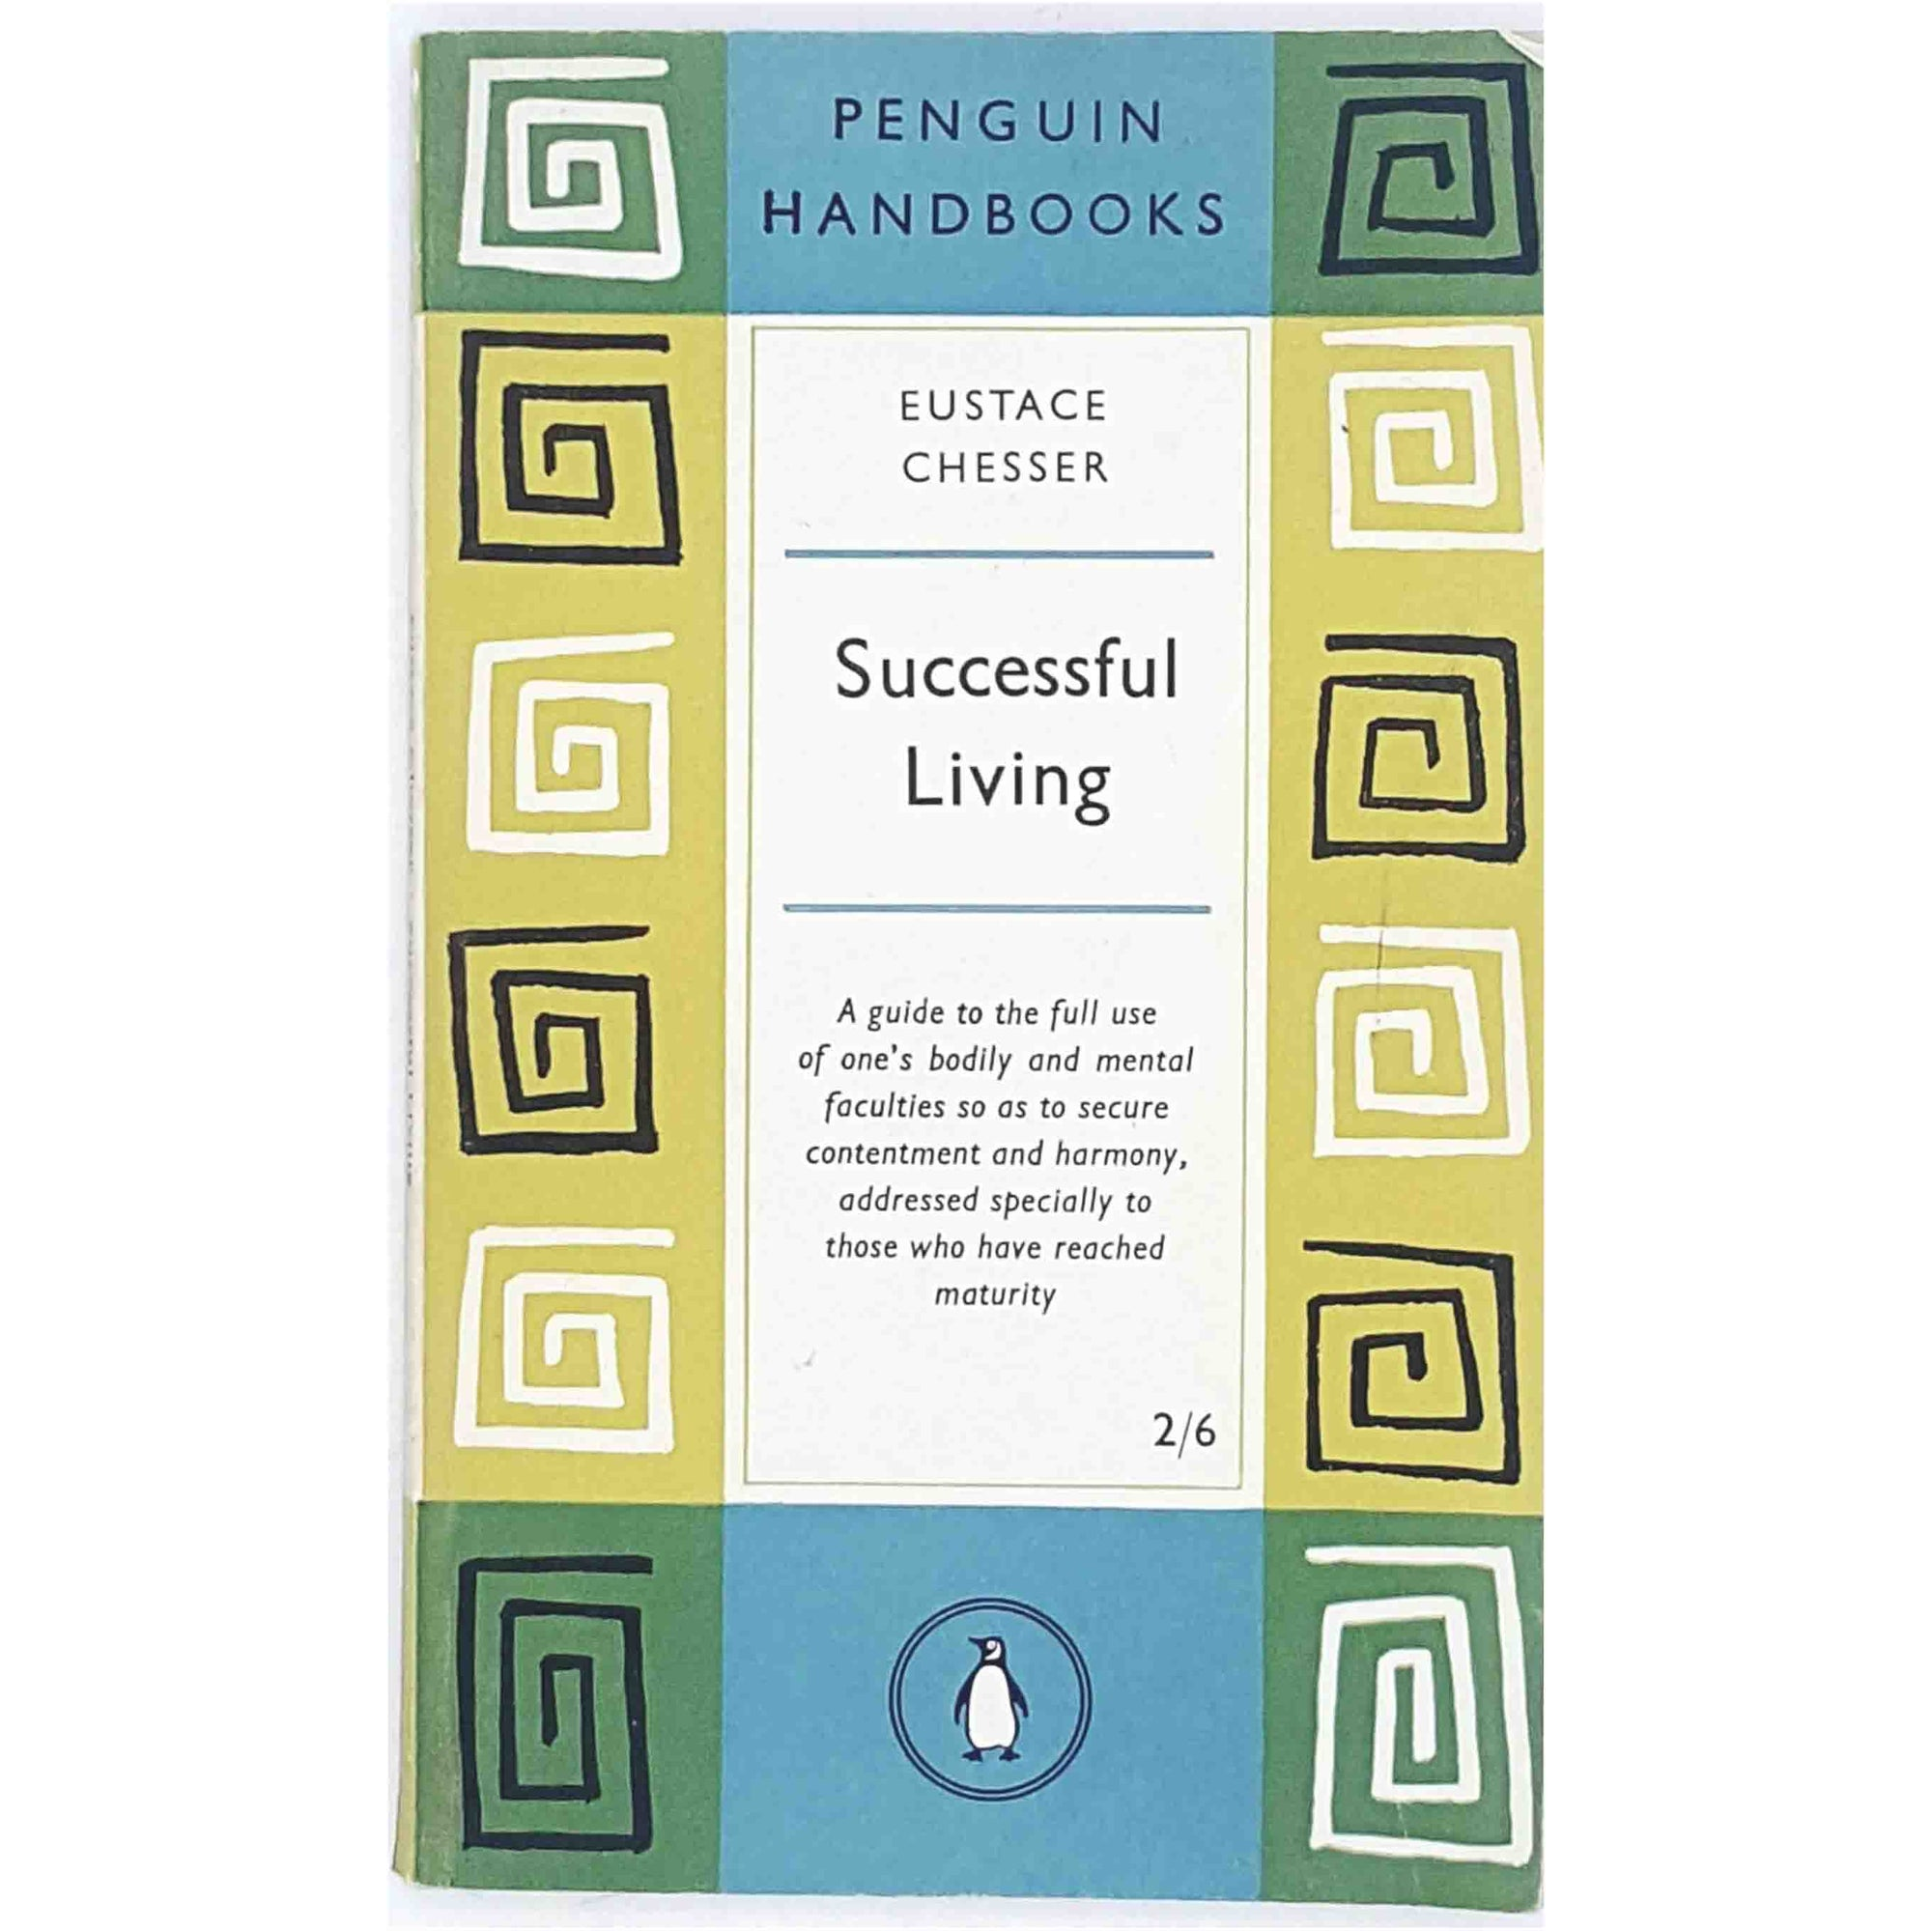 Vintage Penguin Handbook: Successful Living by Eustace Chesser 1958